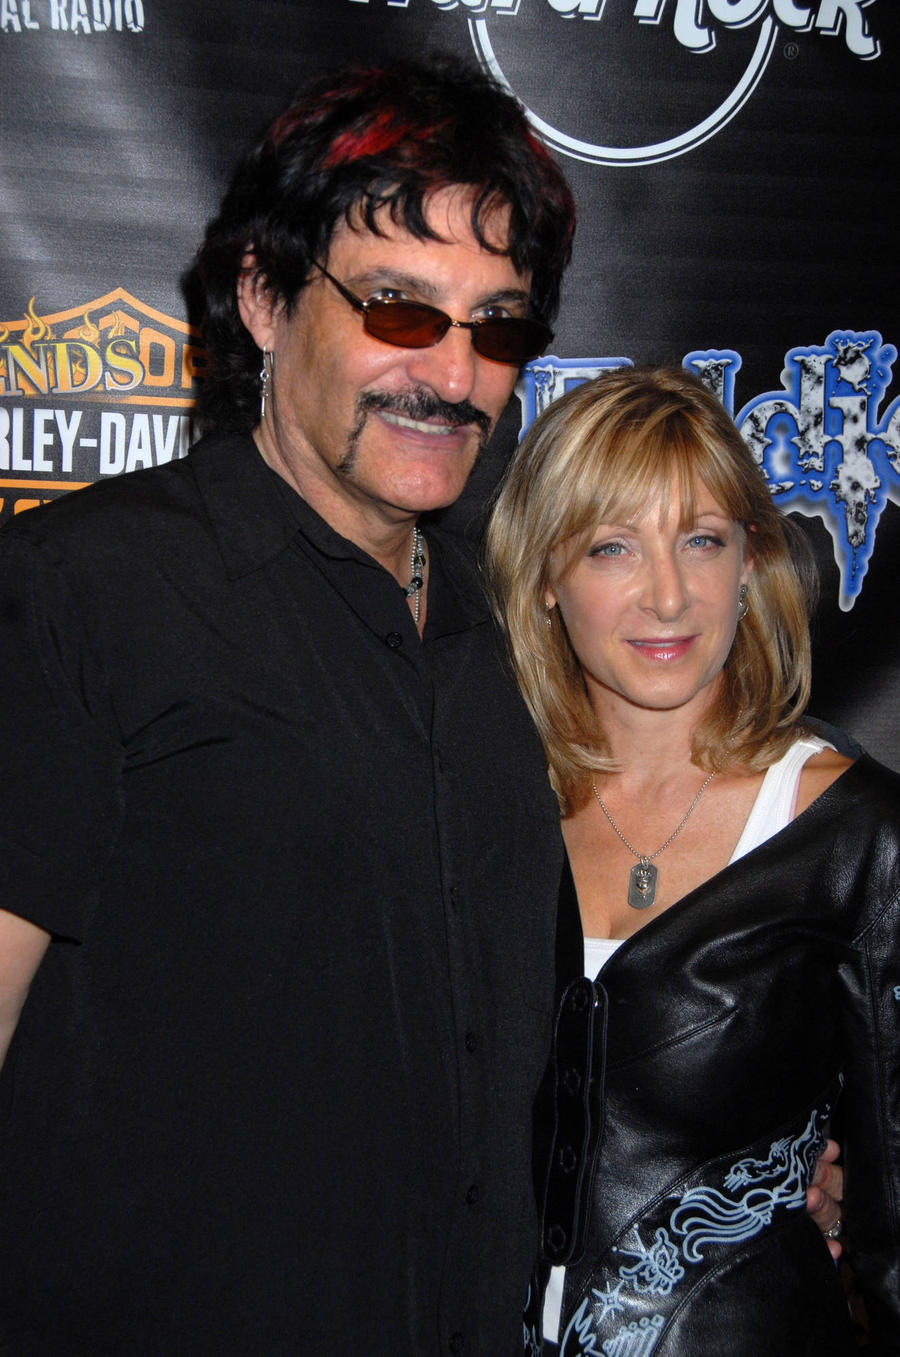 Carmine Appice: 'Sharon Osbourne Is The Most Vicious Woman In Rock'